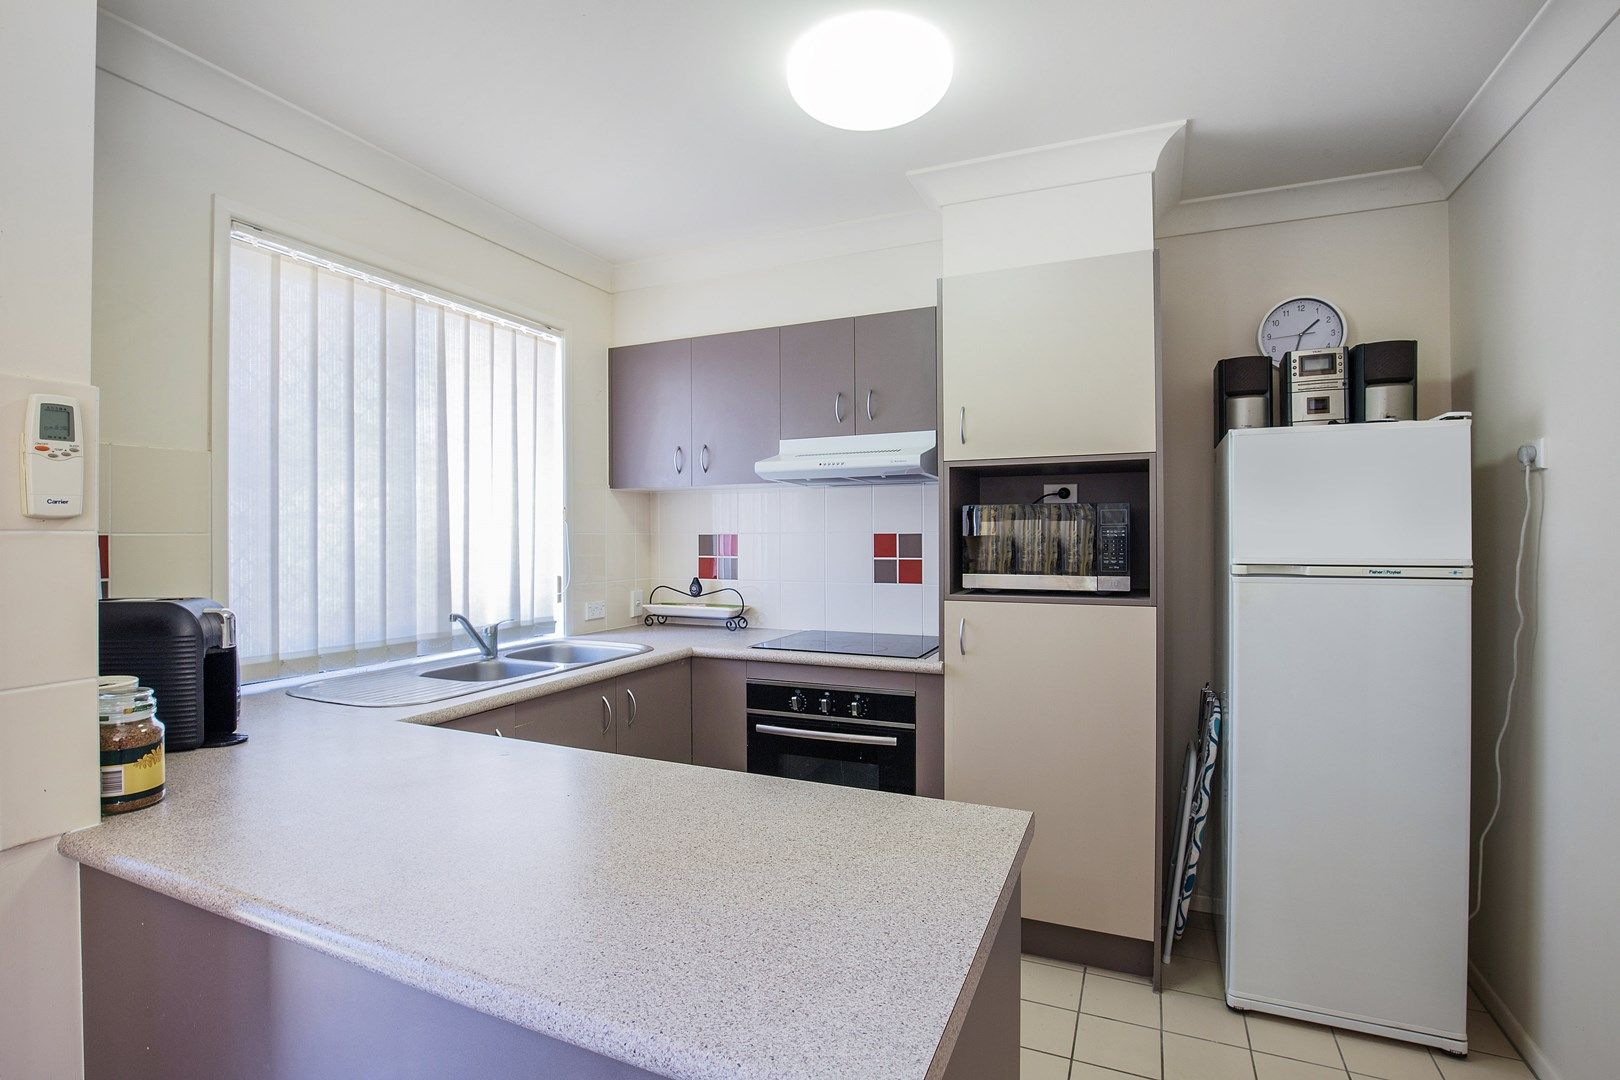 82/60 Beattie Road, Coomera QLD 4209, Image 0